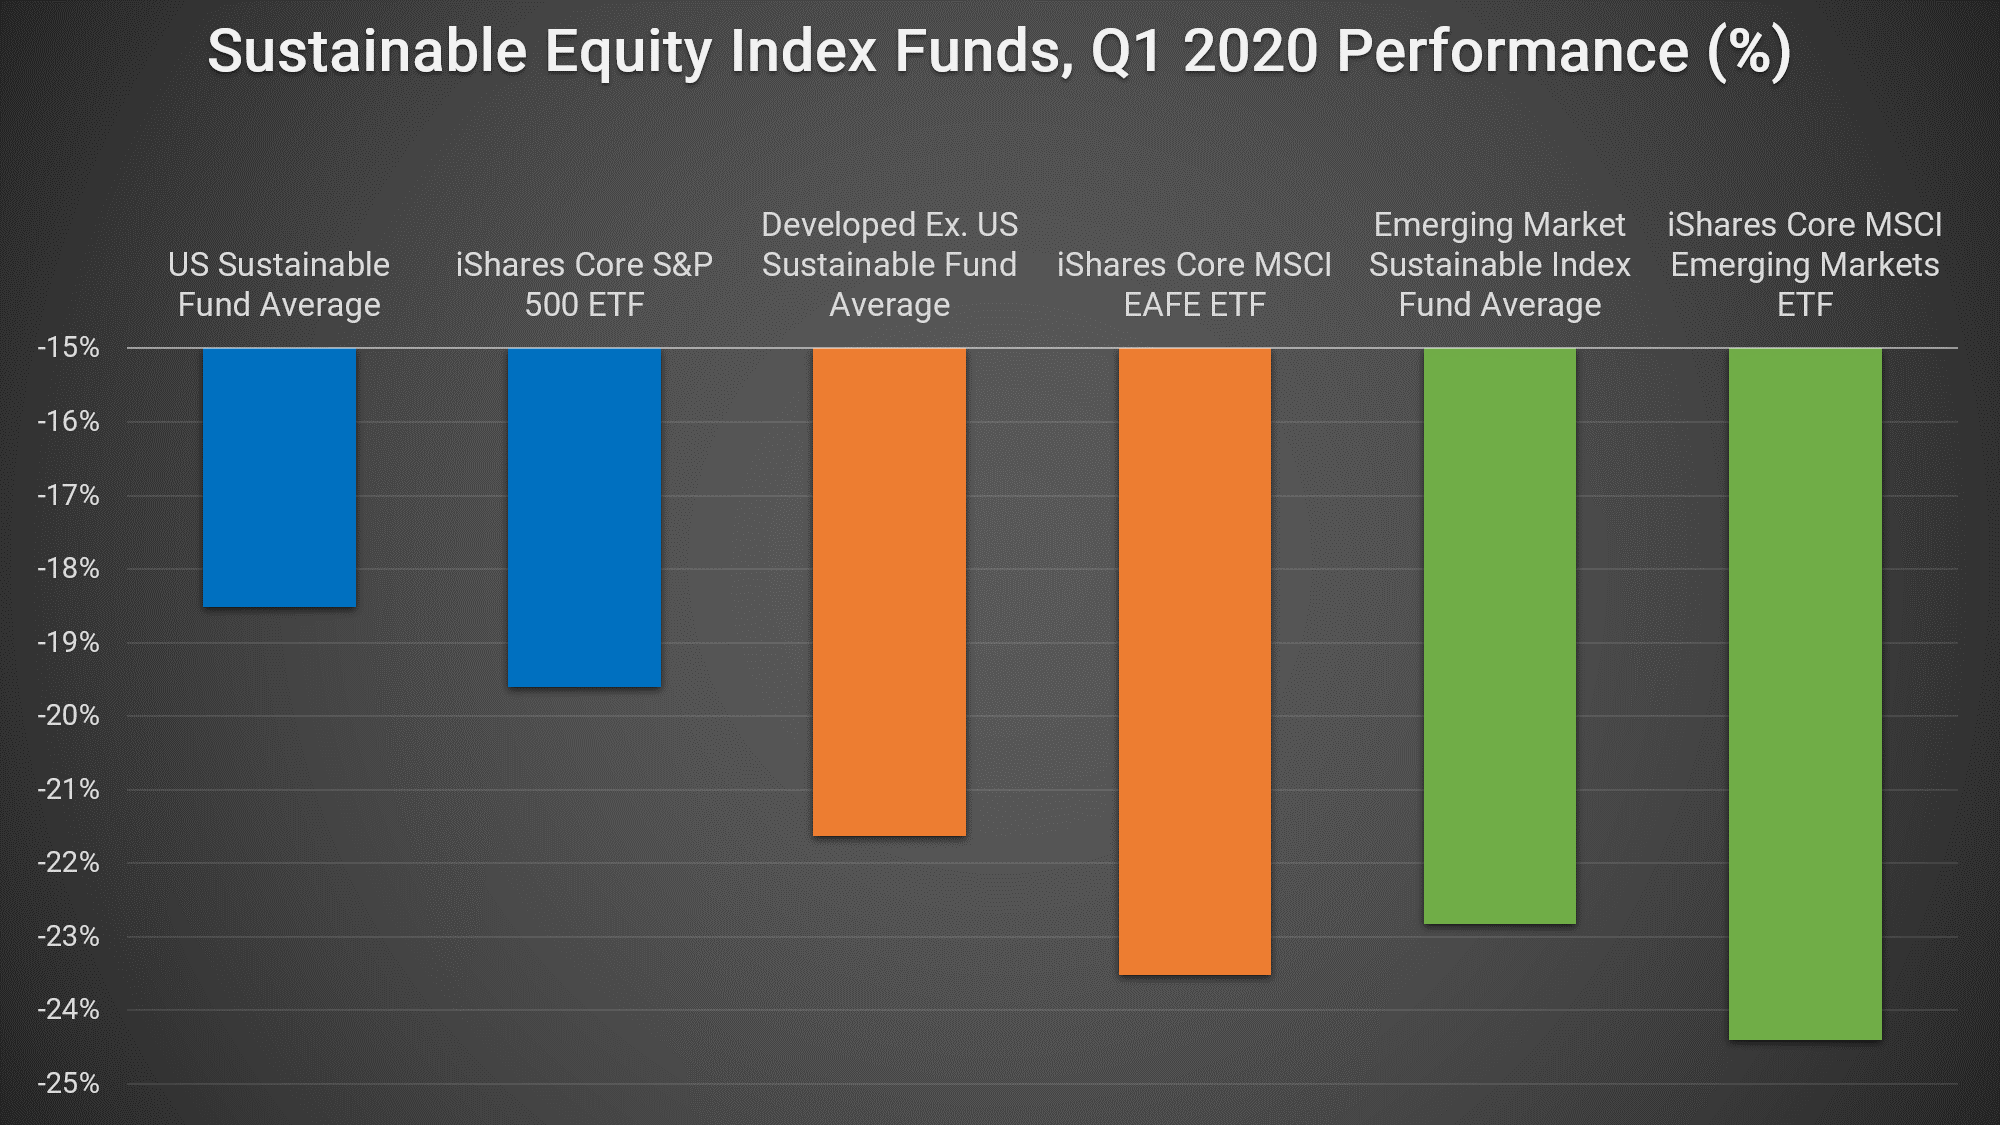 One key determinant of whether corporate commitments to CSR will be upheld is how the markets respond to different strategies. So far, there is some early evidence that investors are rewarding companies that demonstrate sound ESG practices. Morningstar, for example, found that sustainable/ESG index funds outperformed broader indices in the first quarter amidst broader stock market decline.